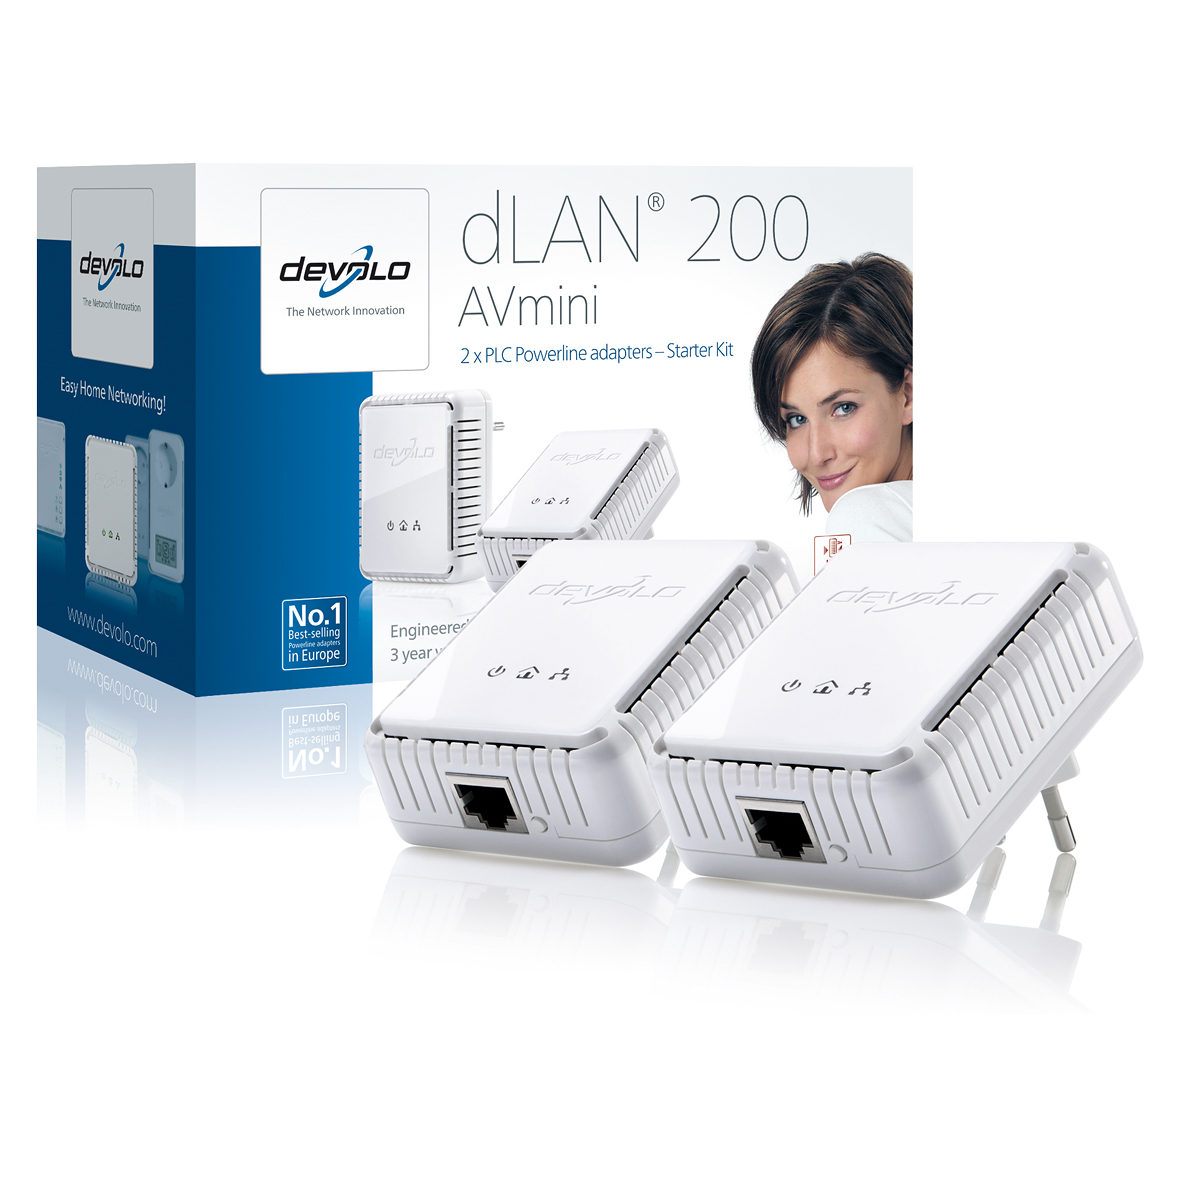 the dlan 200 avmini from devolo The devolo dlan 200 avsmart+ is a great copywriters' tool the well-made devolo powerline networking equipment offers a secure alternative to wireless – or enables you to reach corners of a property where wireless just can't reach.